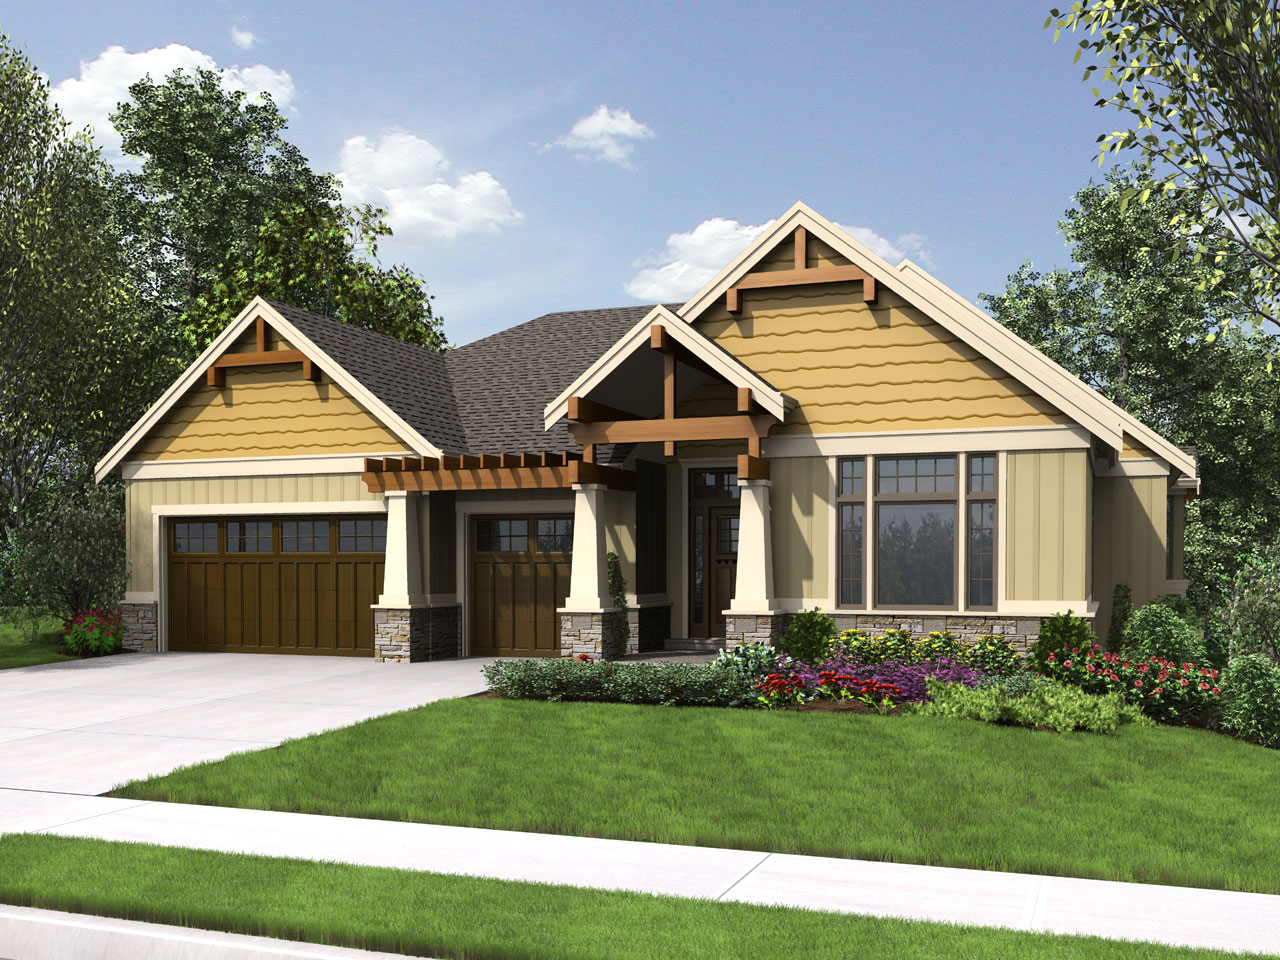 Craftsman Style Floor Plans Plan: 74-787